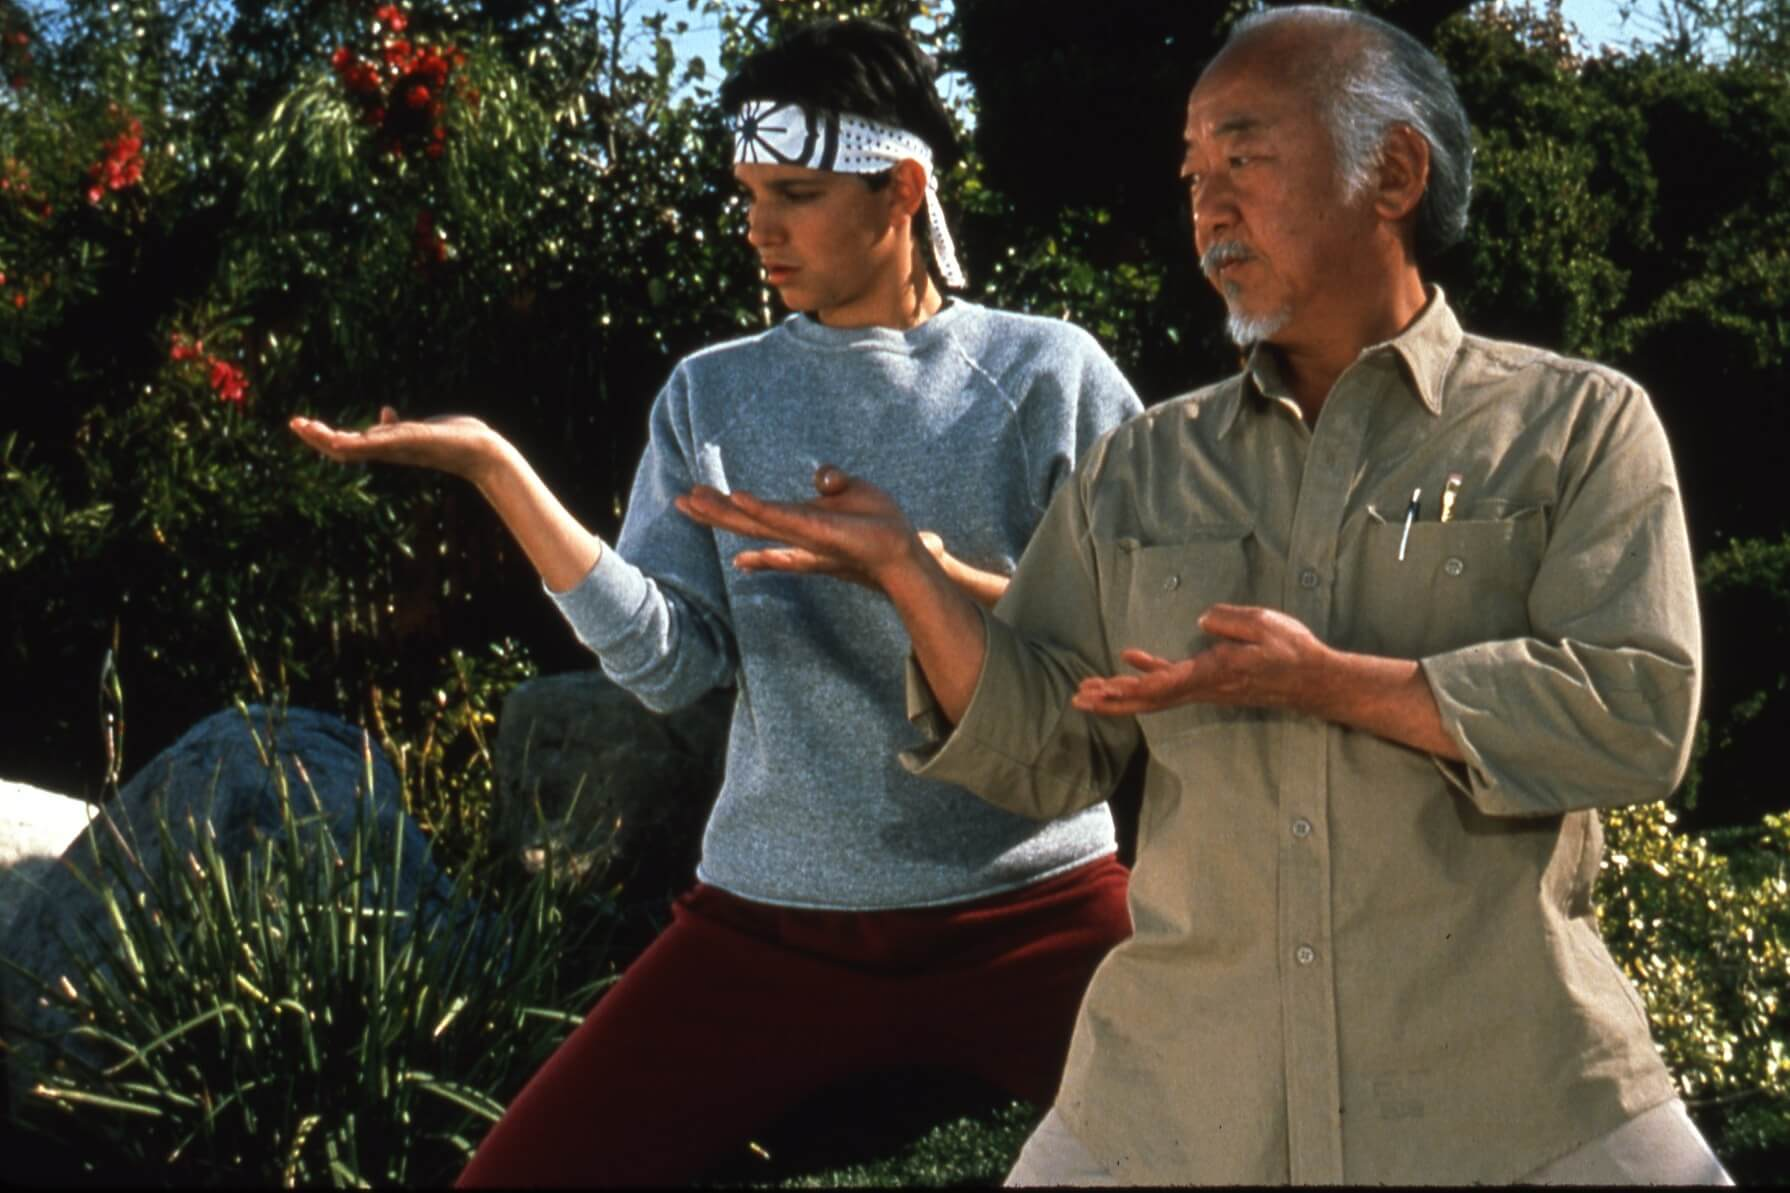 Movies In The Park Summer Series – The Karate Kid